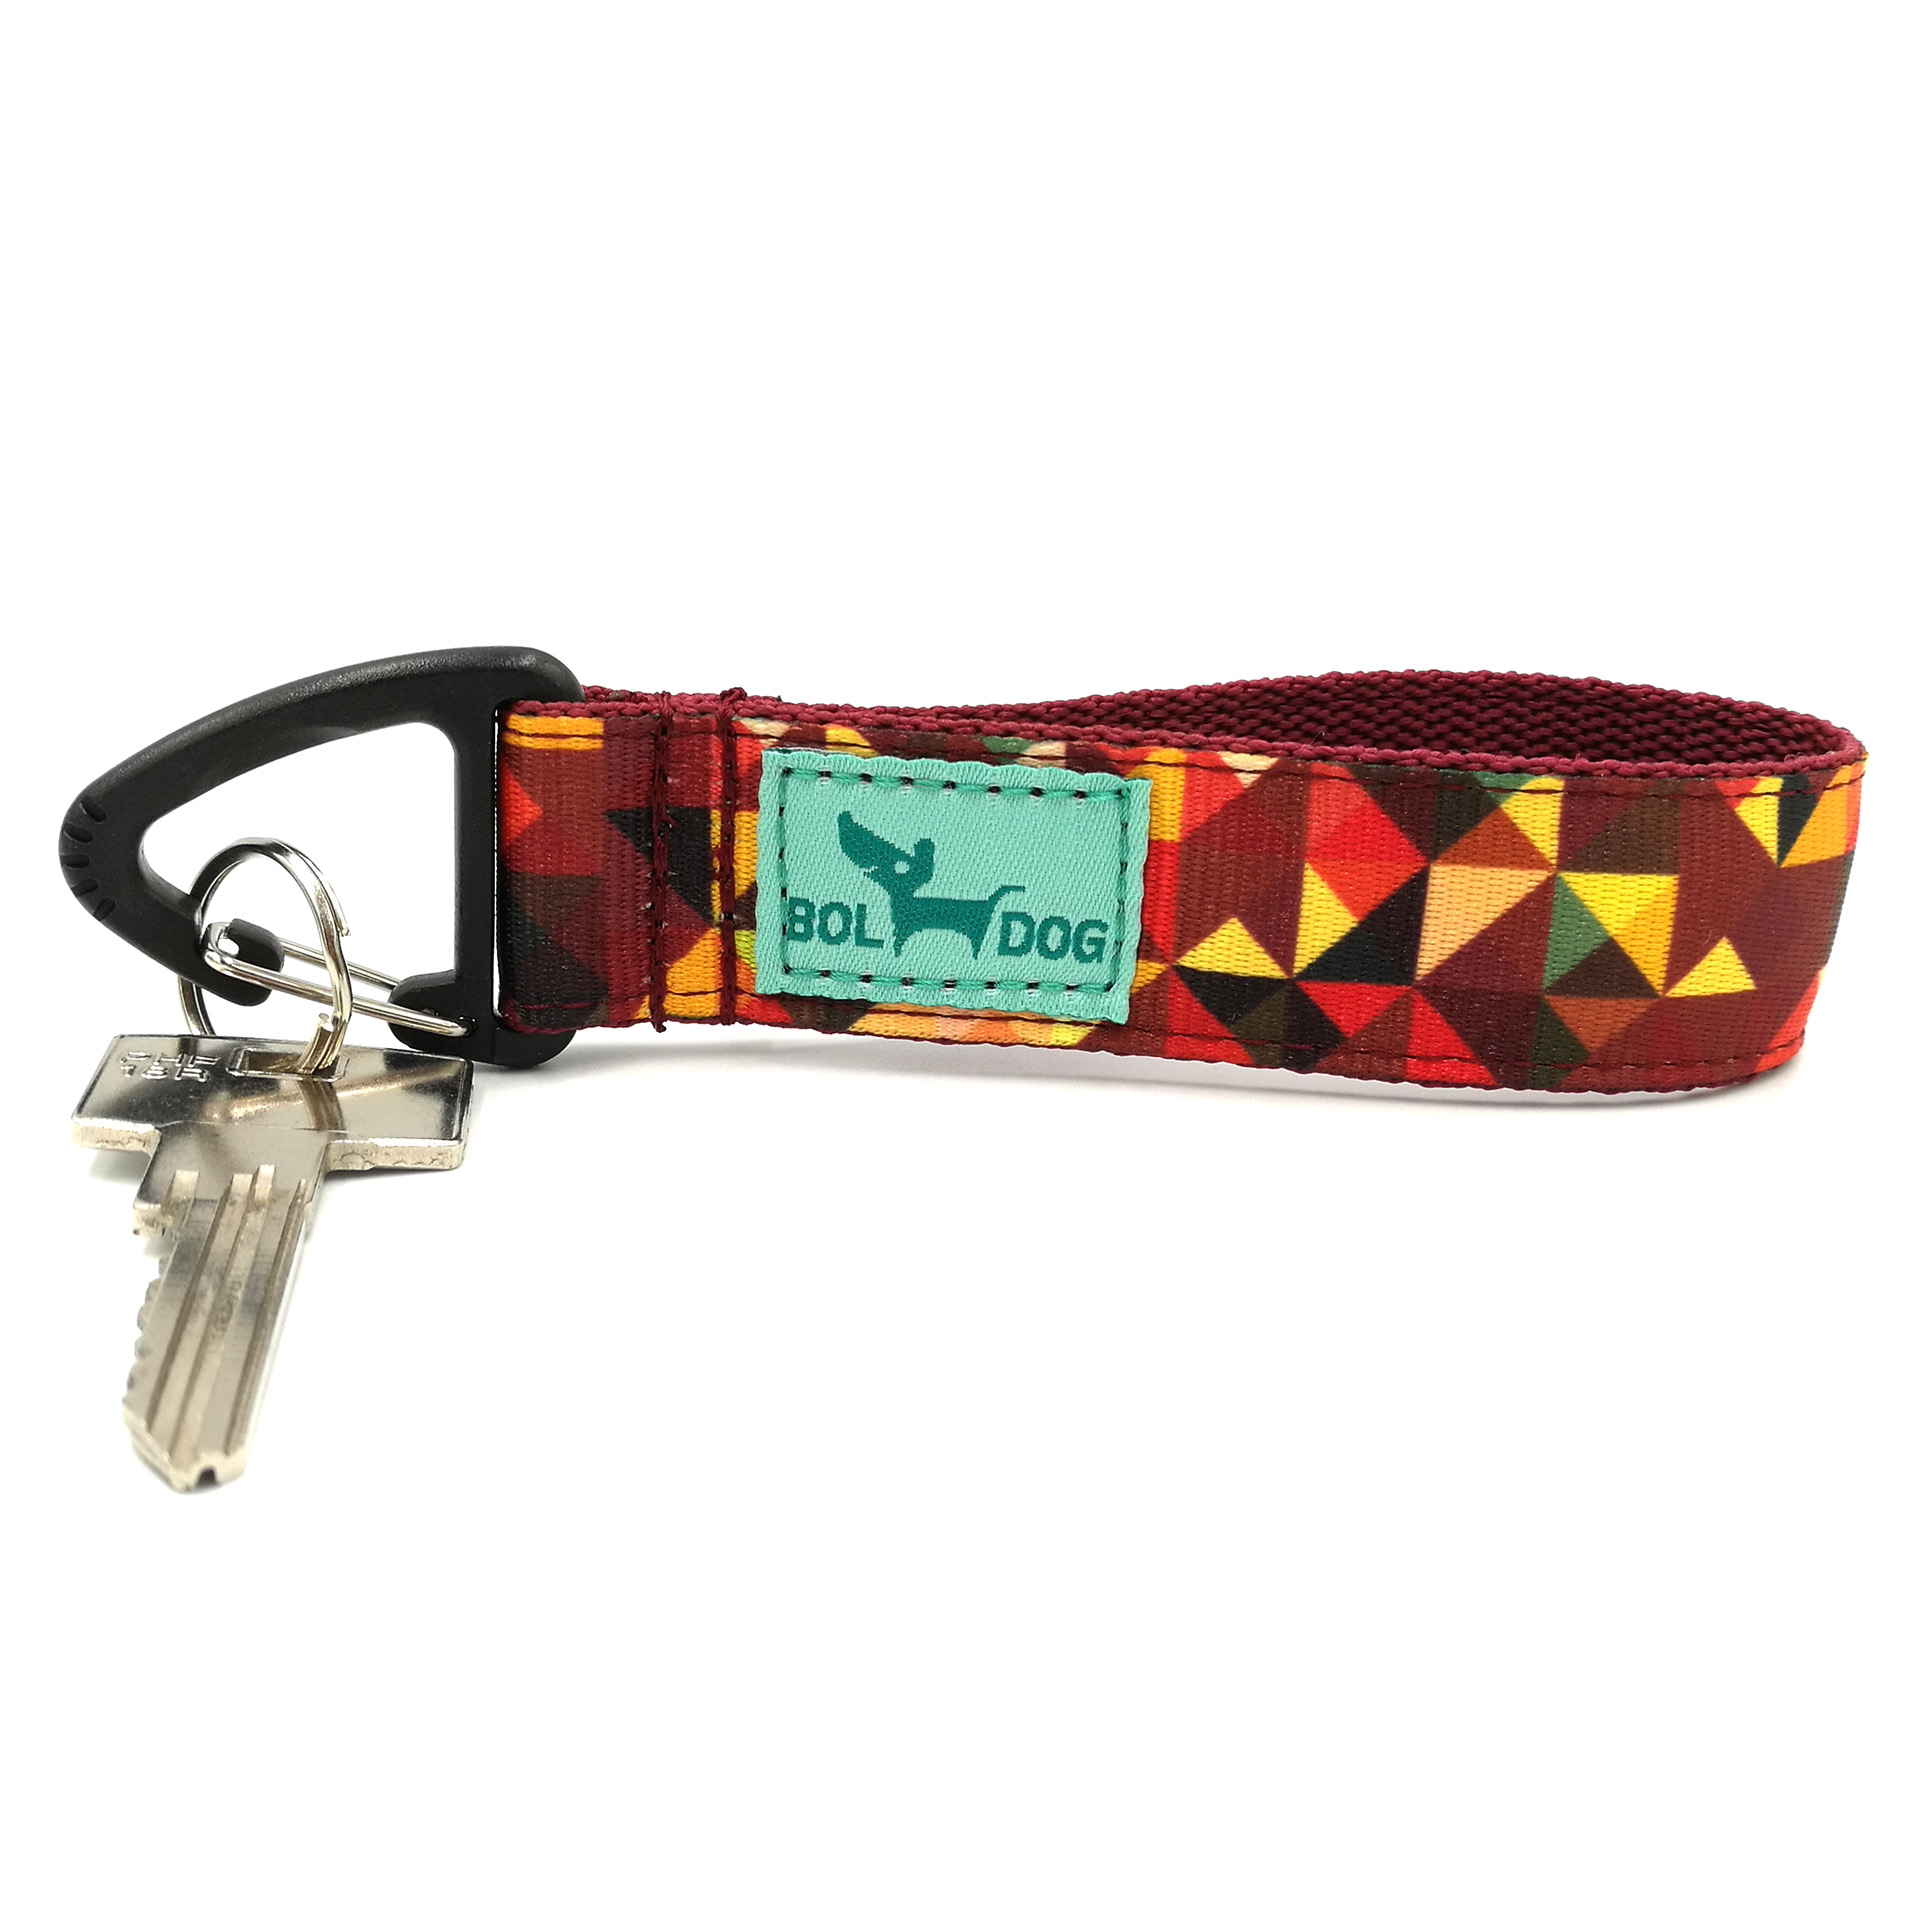 Shaggy key holder